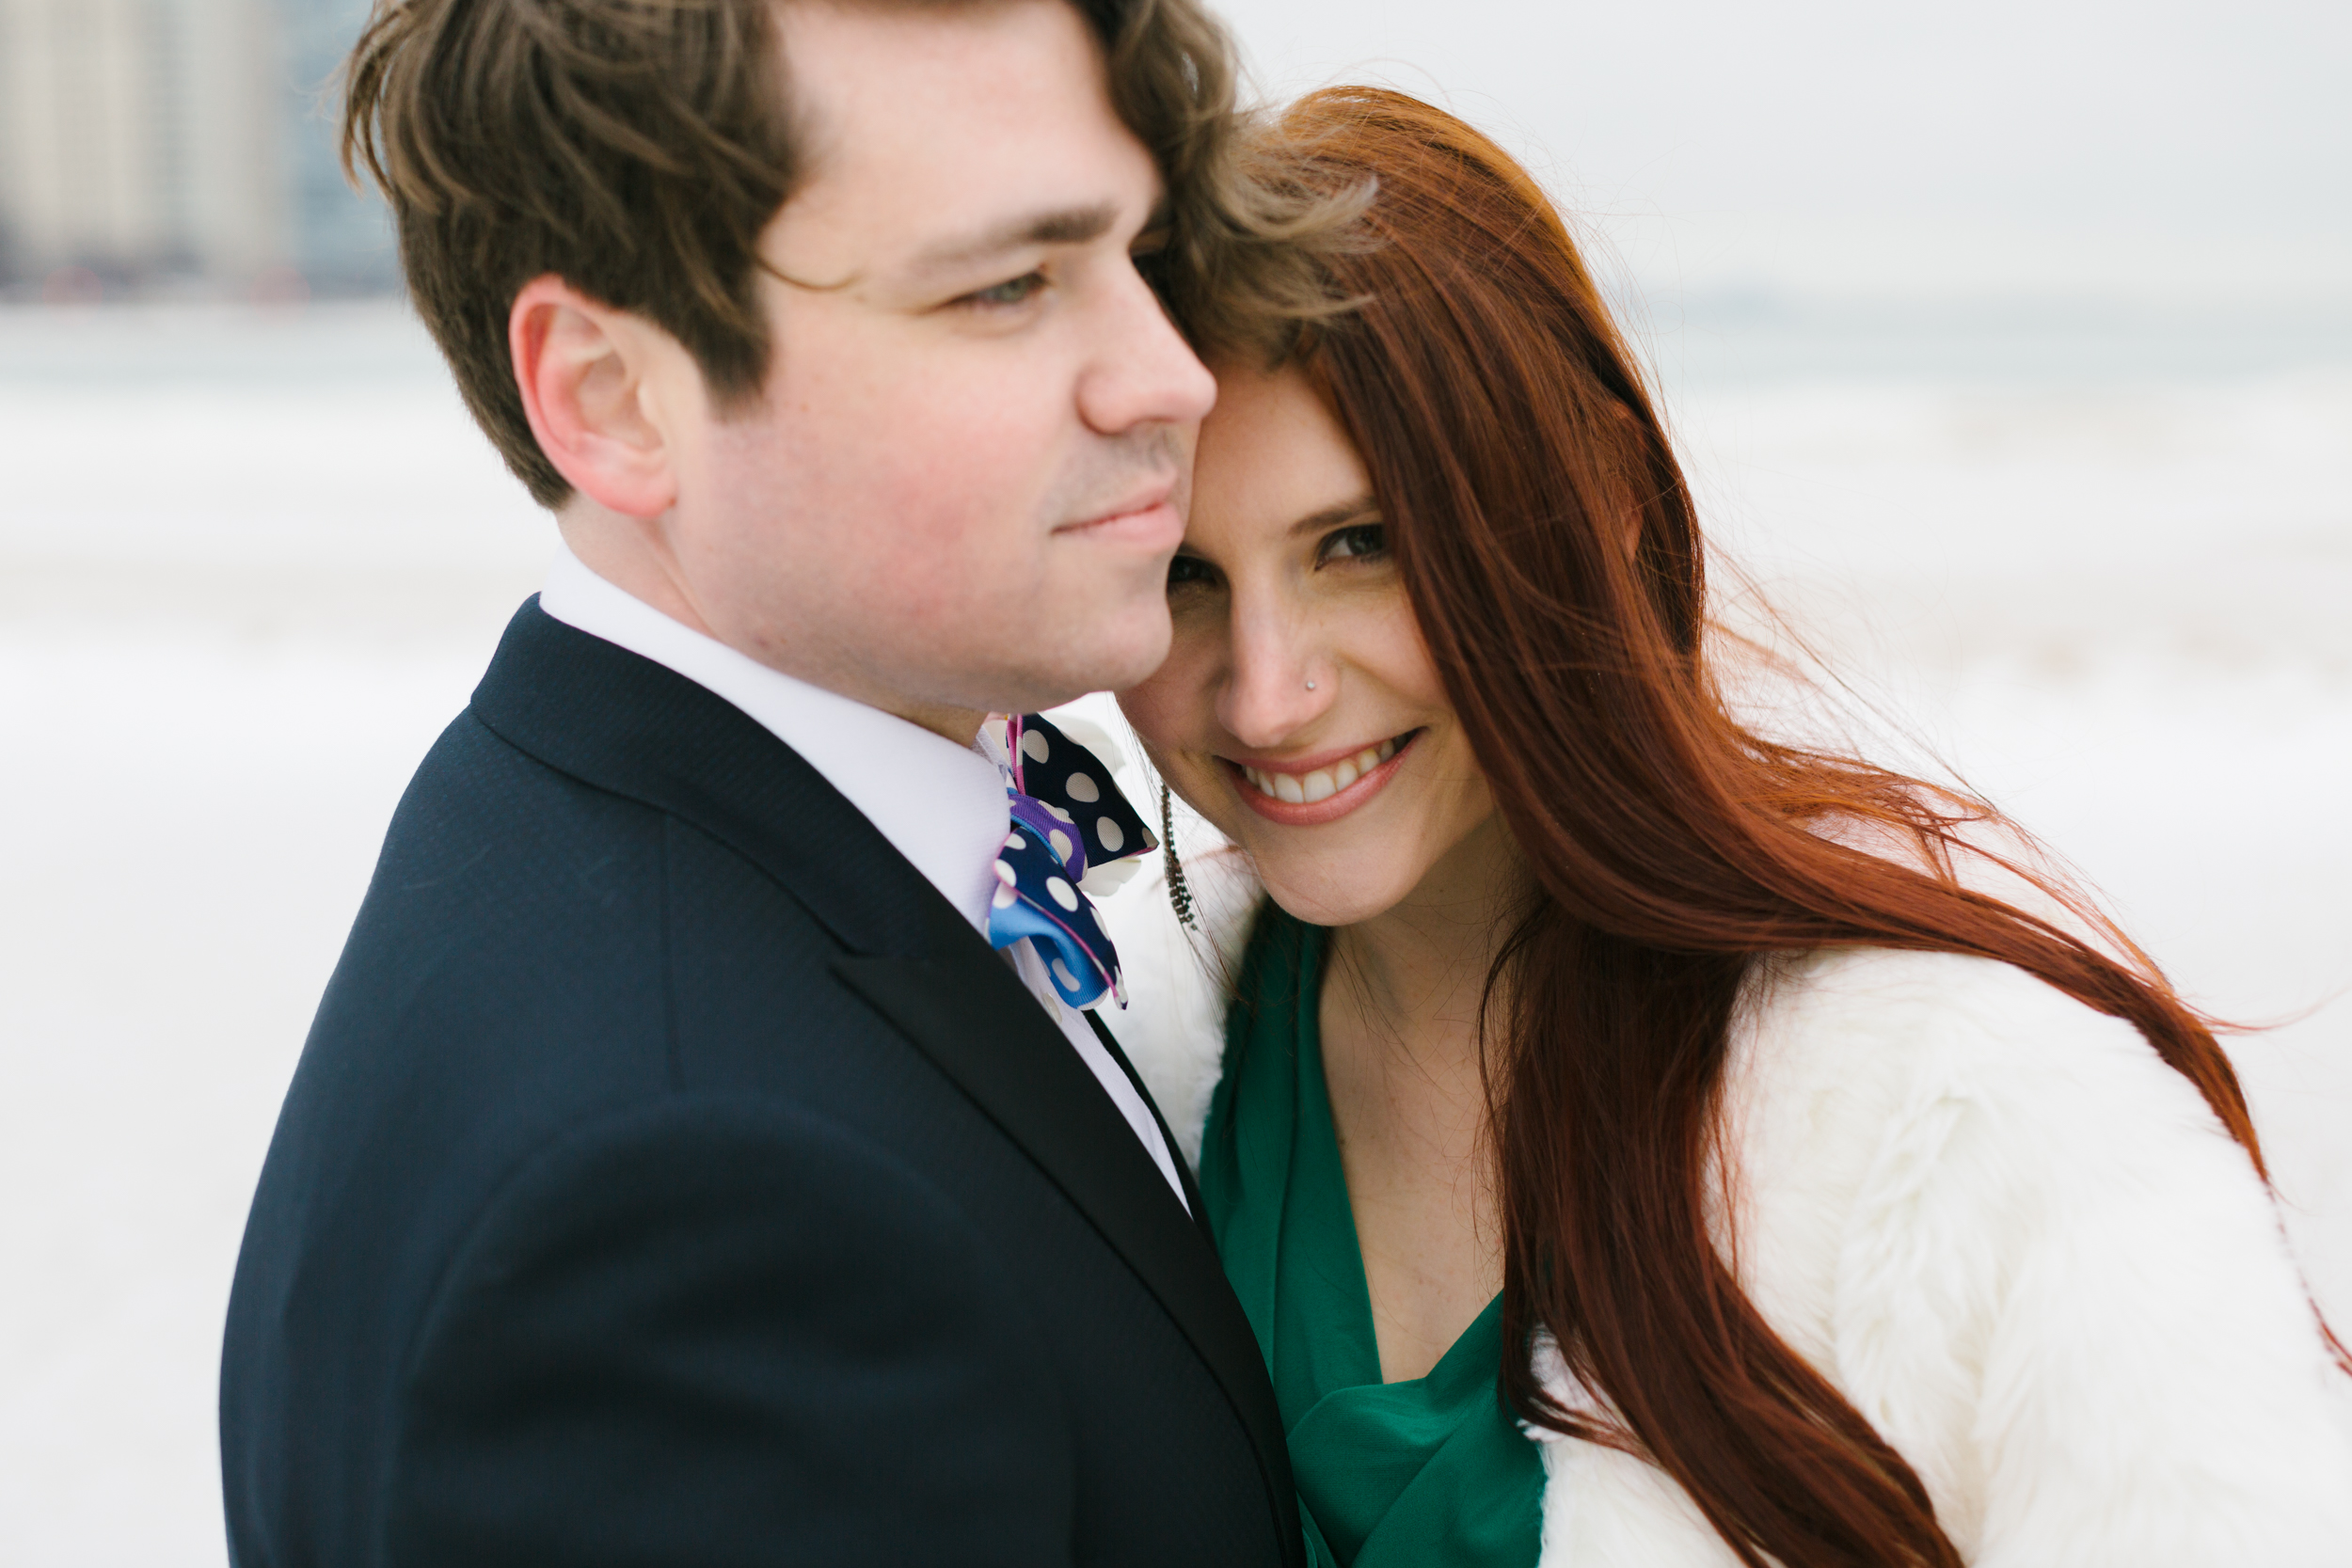 Chicago_elopement_wedding_19